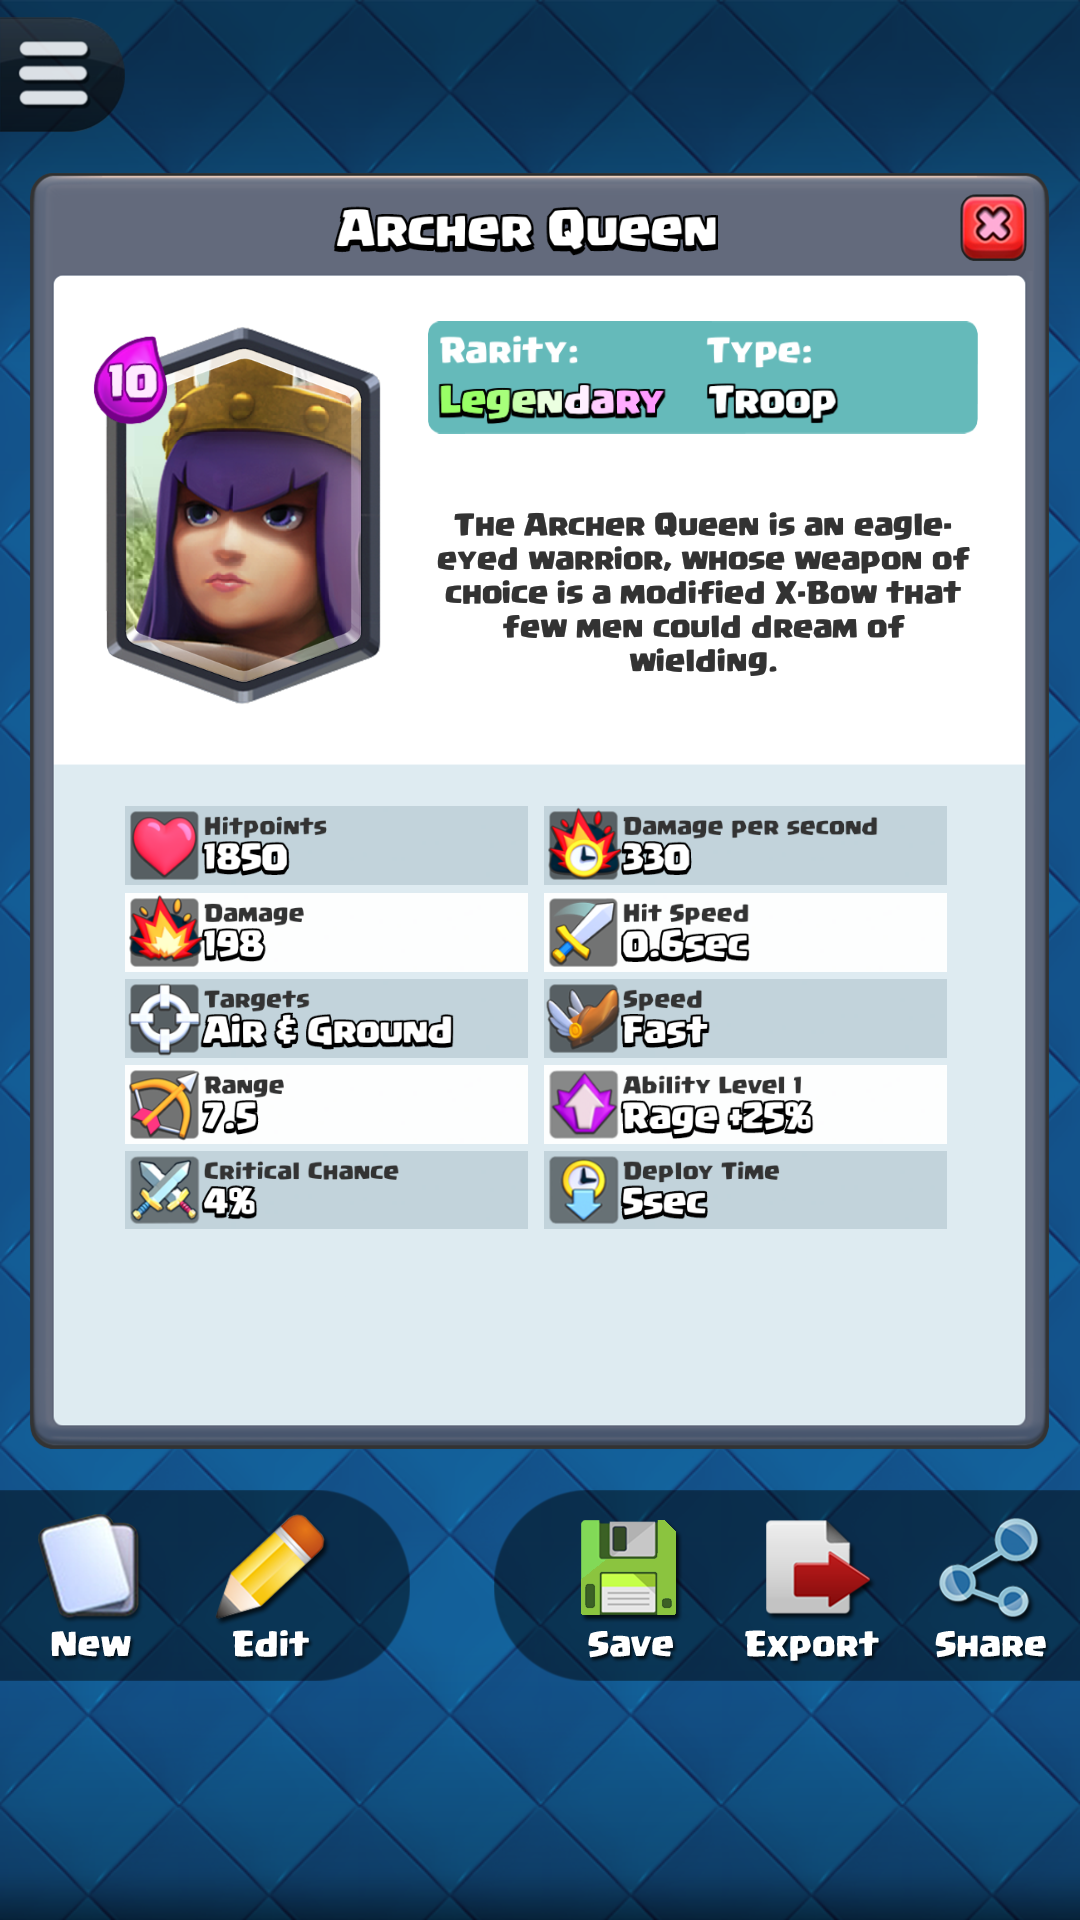 Psp united states card creator for clash royale